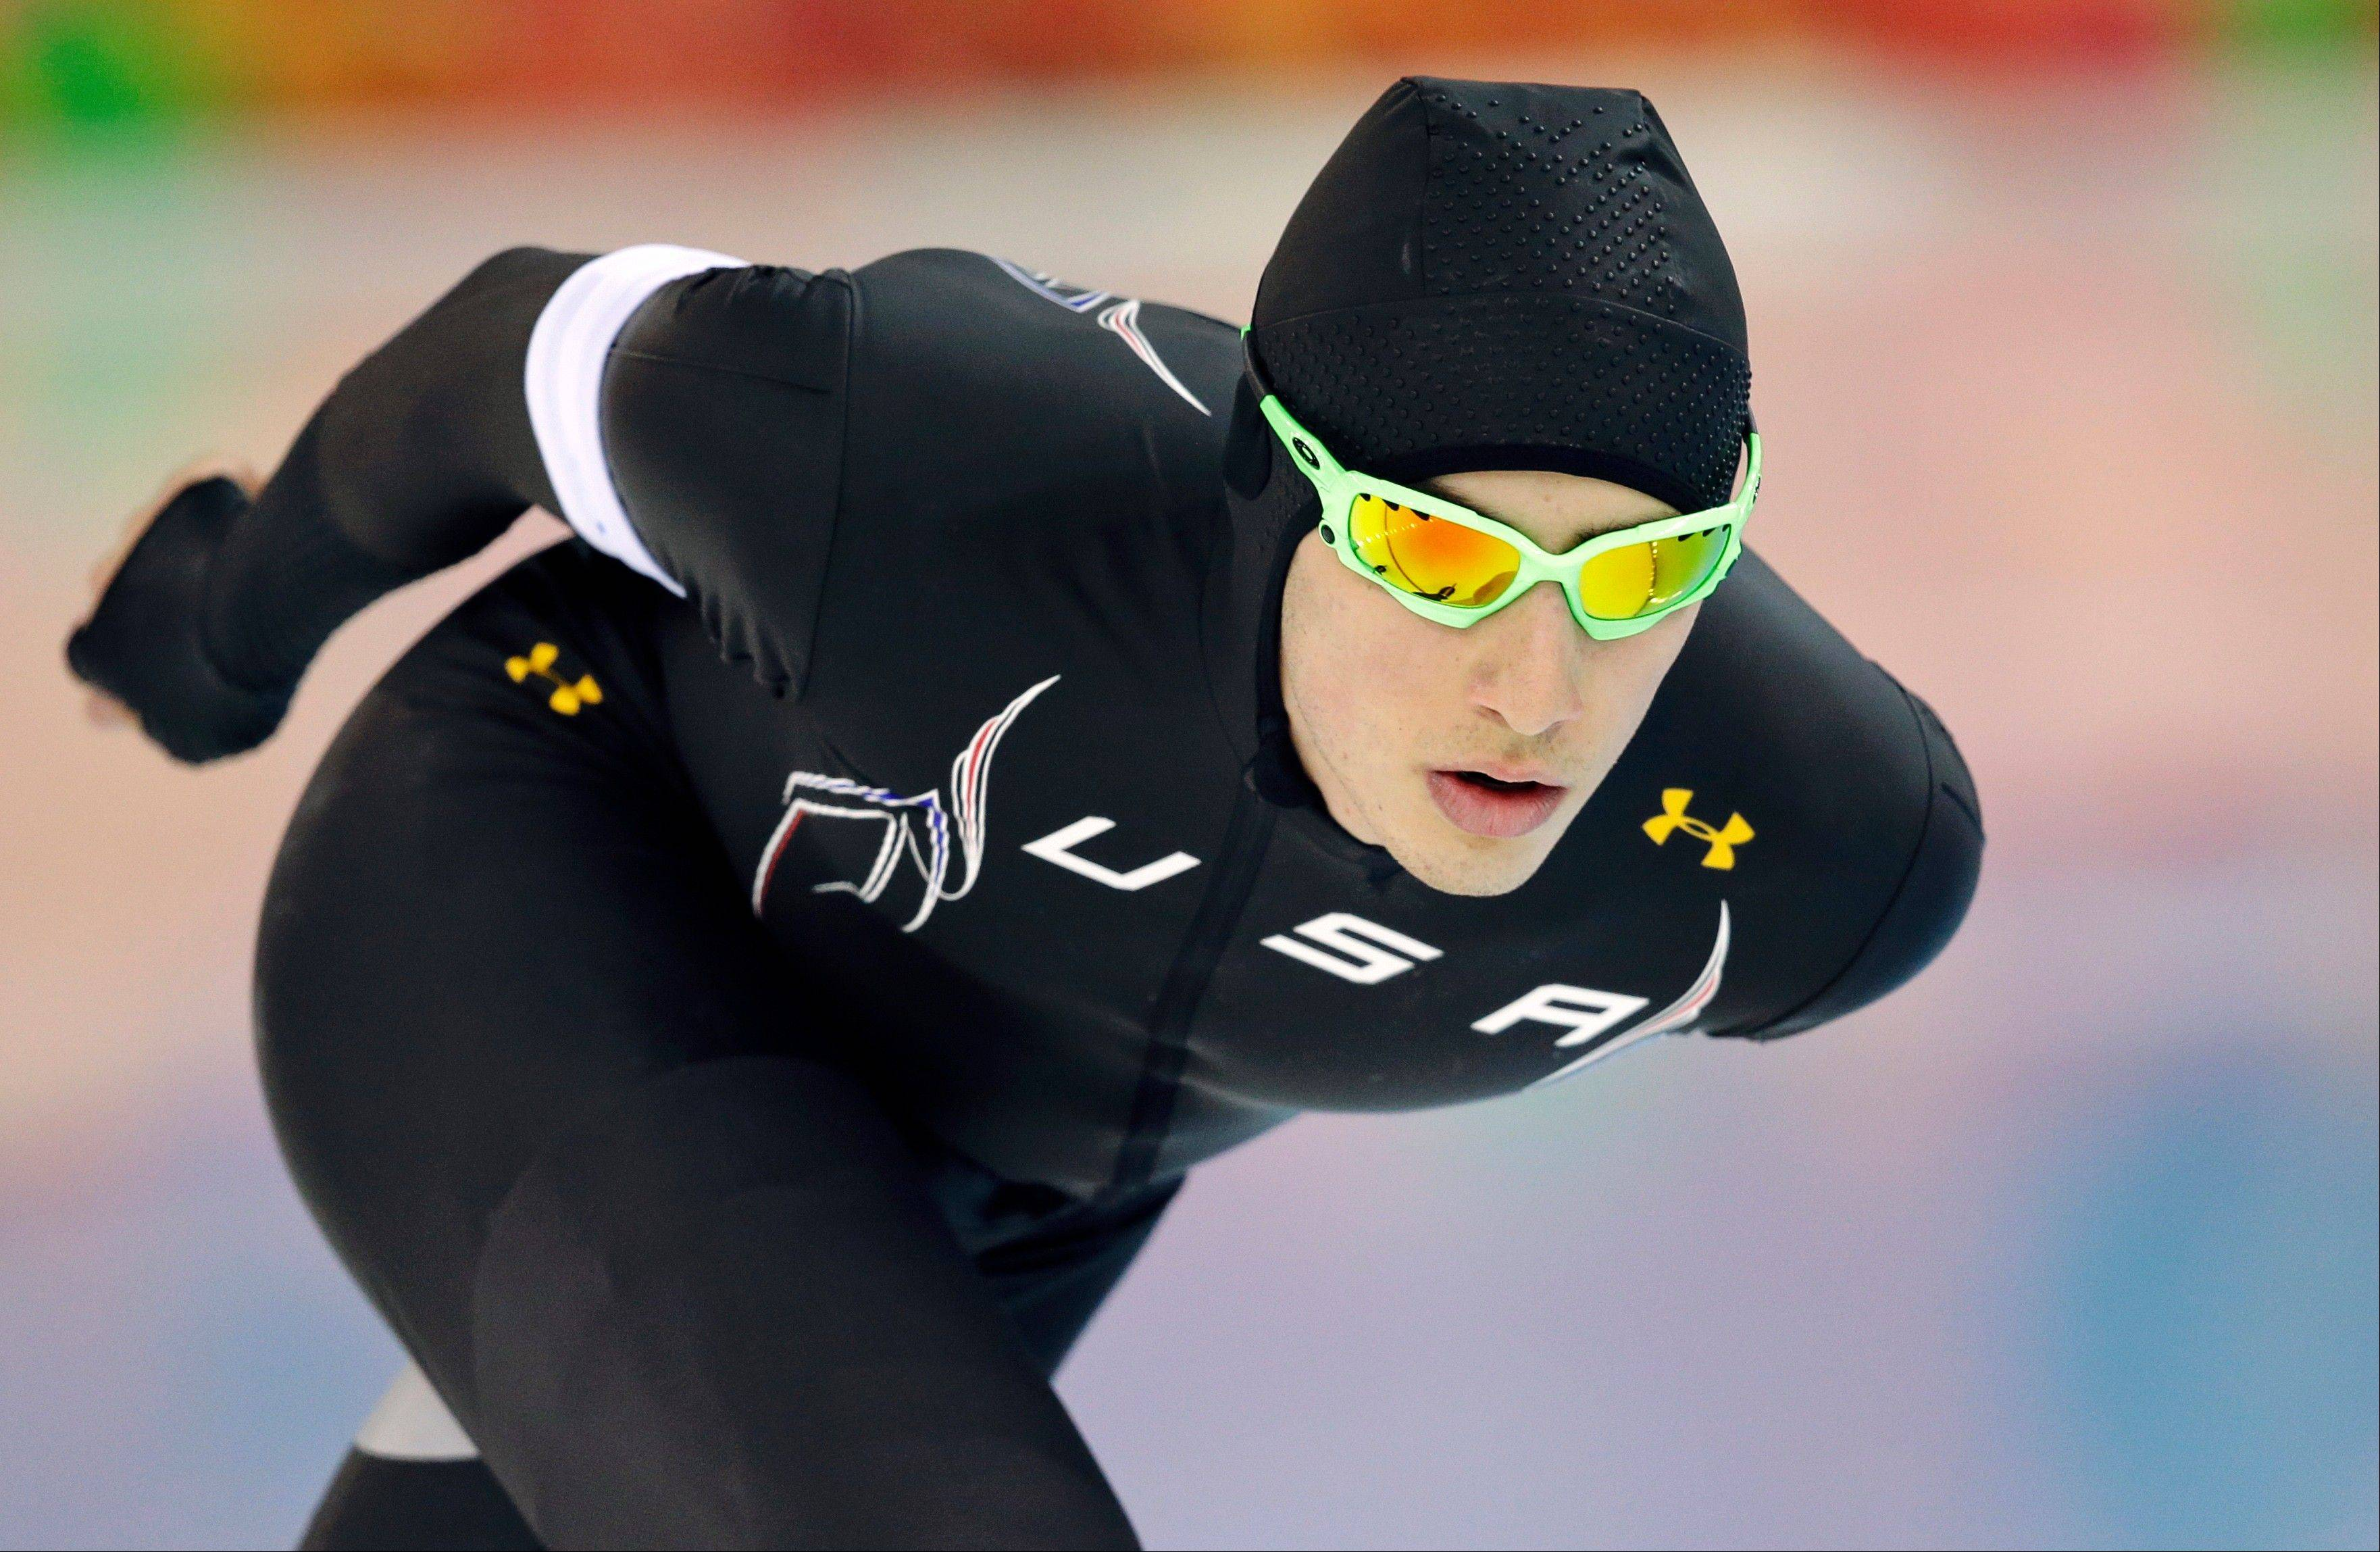 Emery Lehman, 17, of Oak Park placed 16th in his Olympic debut, making him the top American finisher in the men's 5,000-meter speedskating race at the Adler Arena Skating Center during the 2014 Winter Olympics, Saturday, Feb. 8, 2014, in Sochi, Russia.